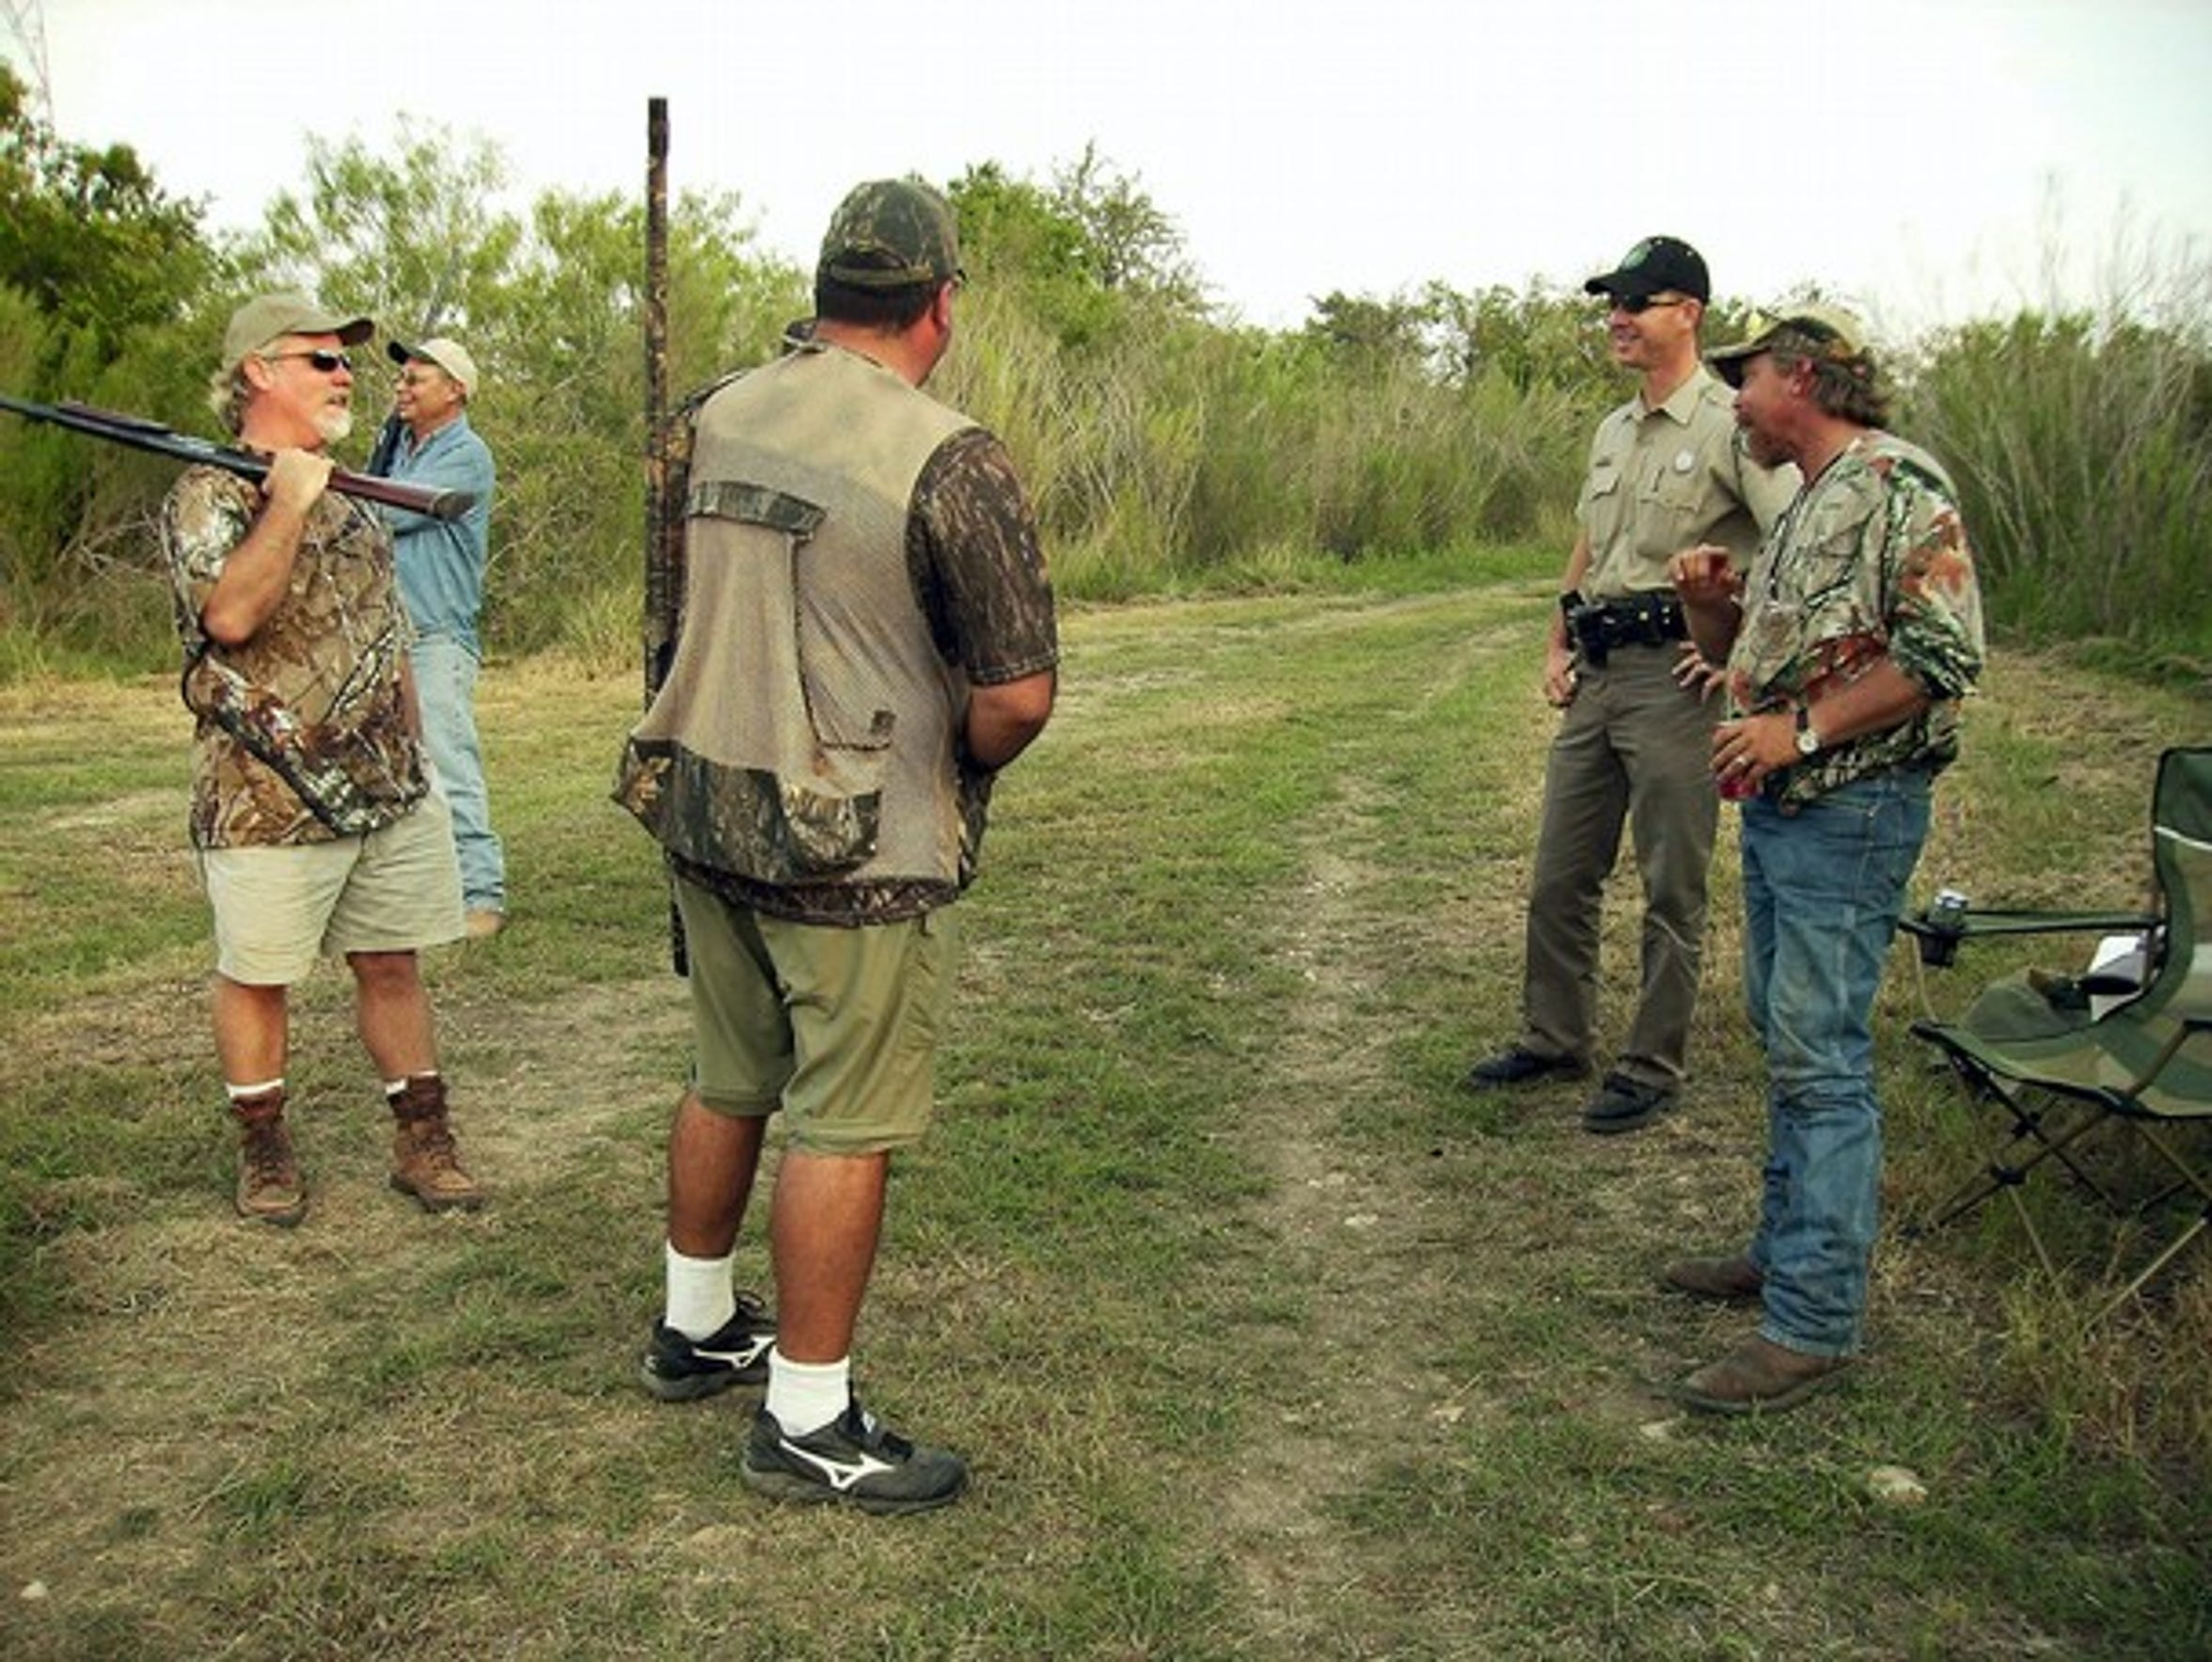 Texas Game Wardens maintain regulations aimed at wildlife and fisheries conservation.